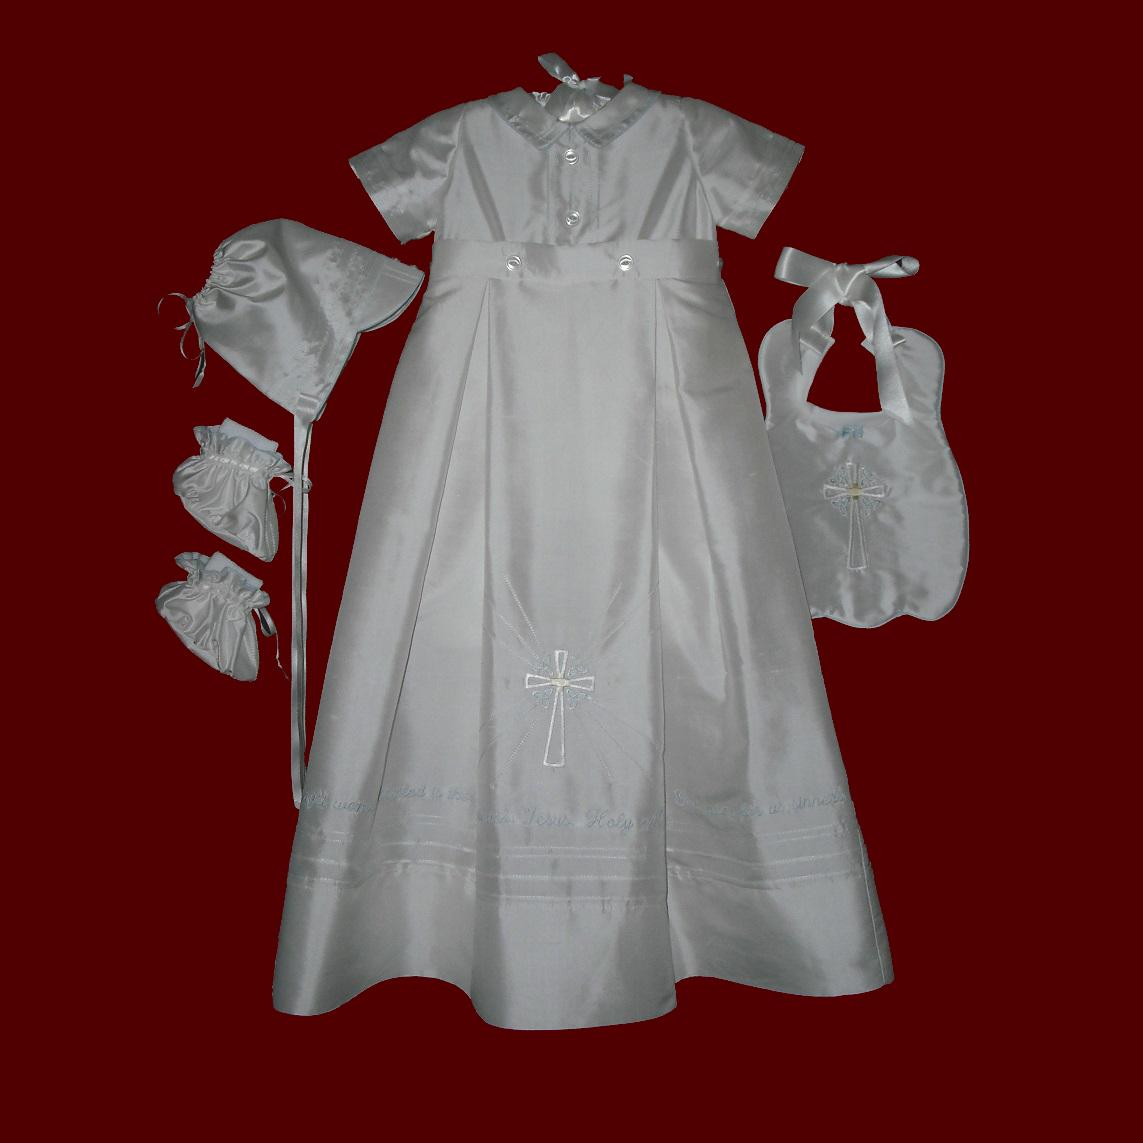 Boys Christening Romper With Detachable Gown With Embroidered Prayer & Accessories